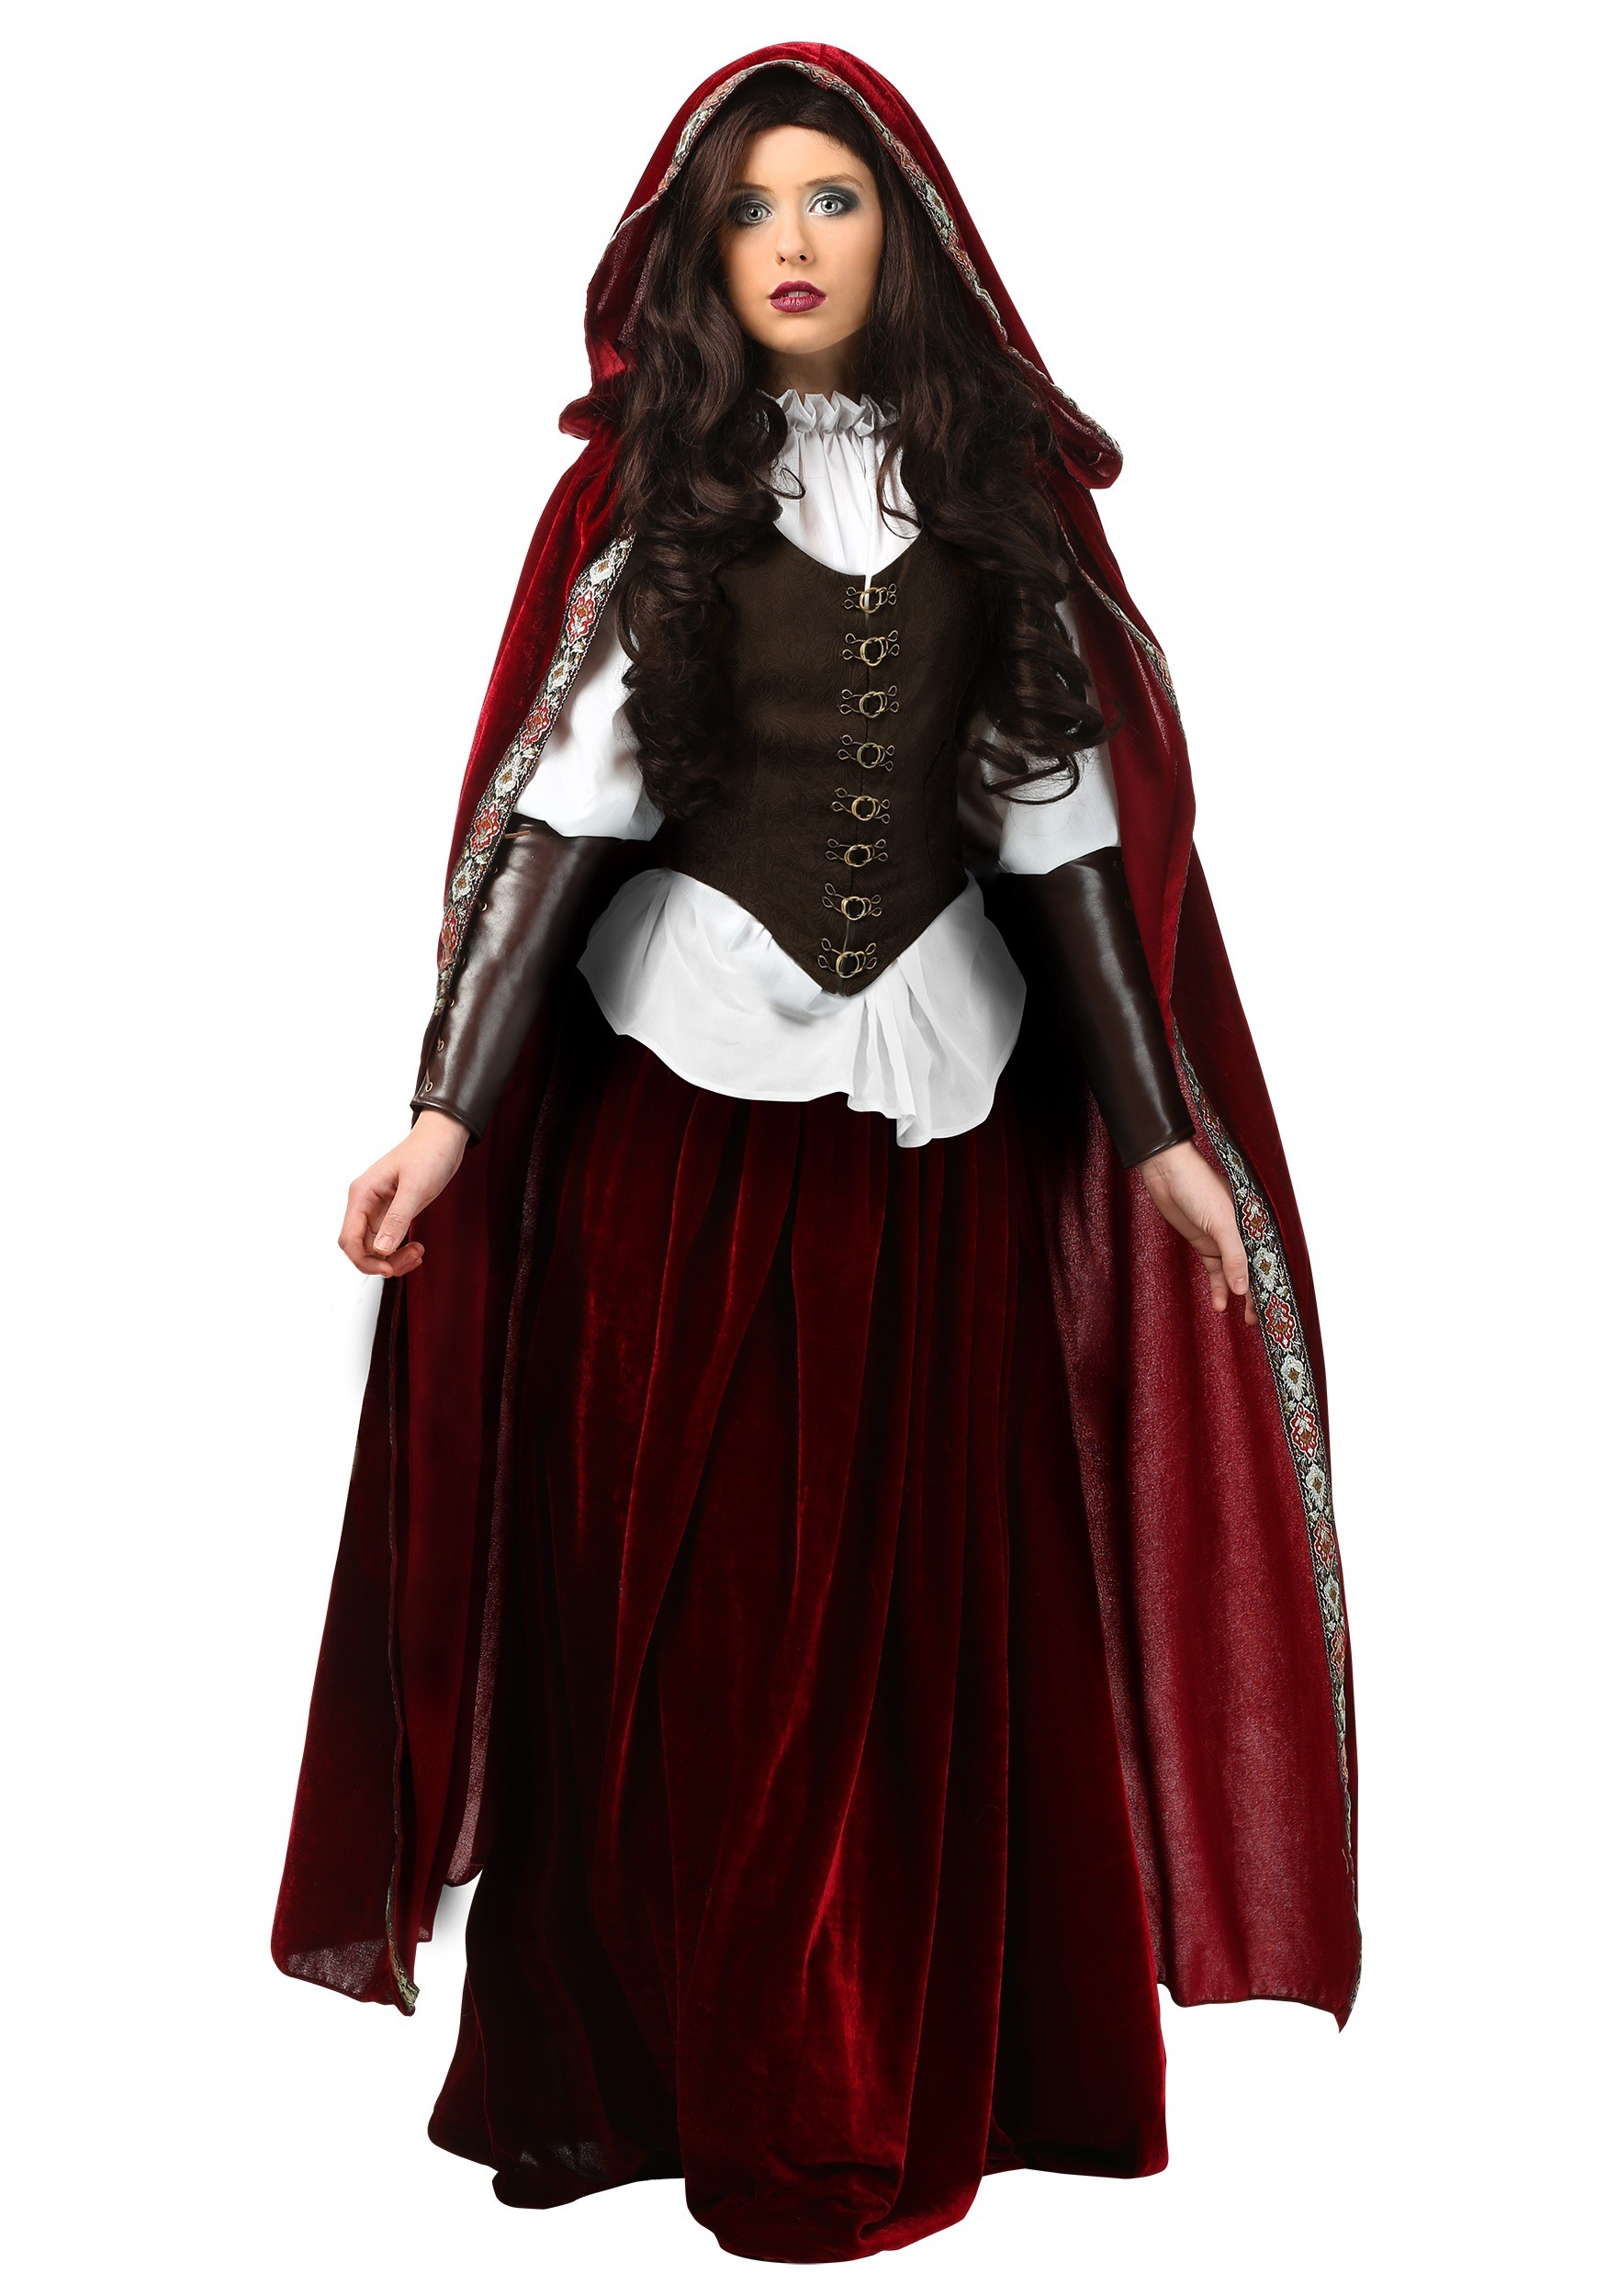 Deluxe Red Riding Hood Plus Size Costume | Exclusive